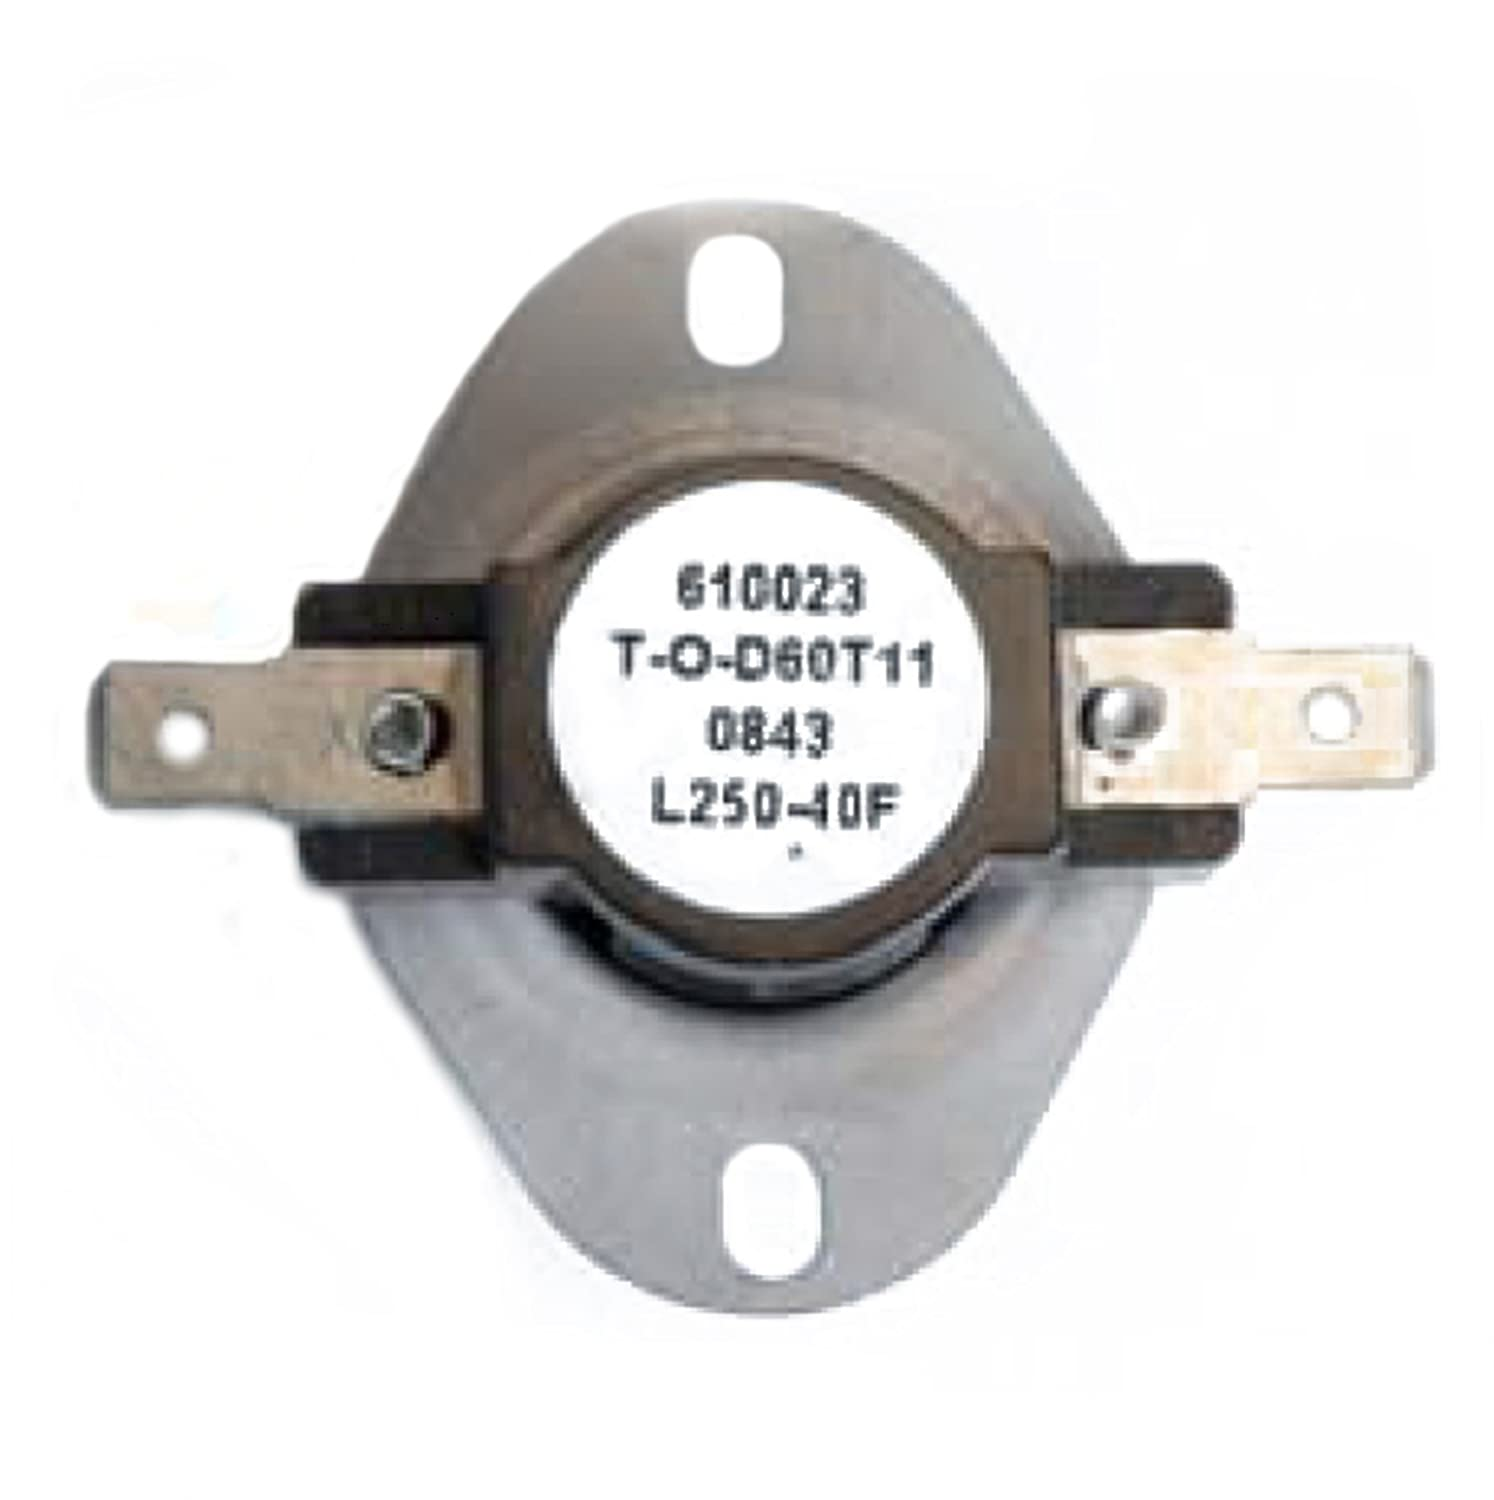 PelletStovePro Napoleon NPS40 /& NPI40 Pellet High Temperature Limit Switch Sensor Disc